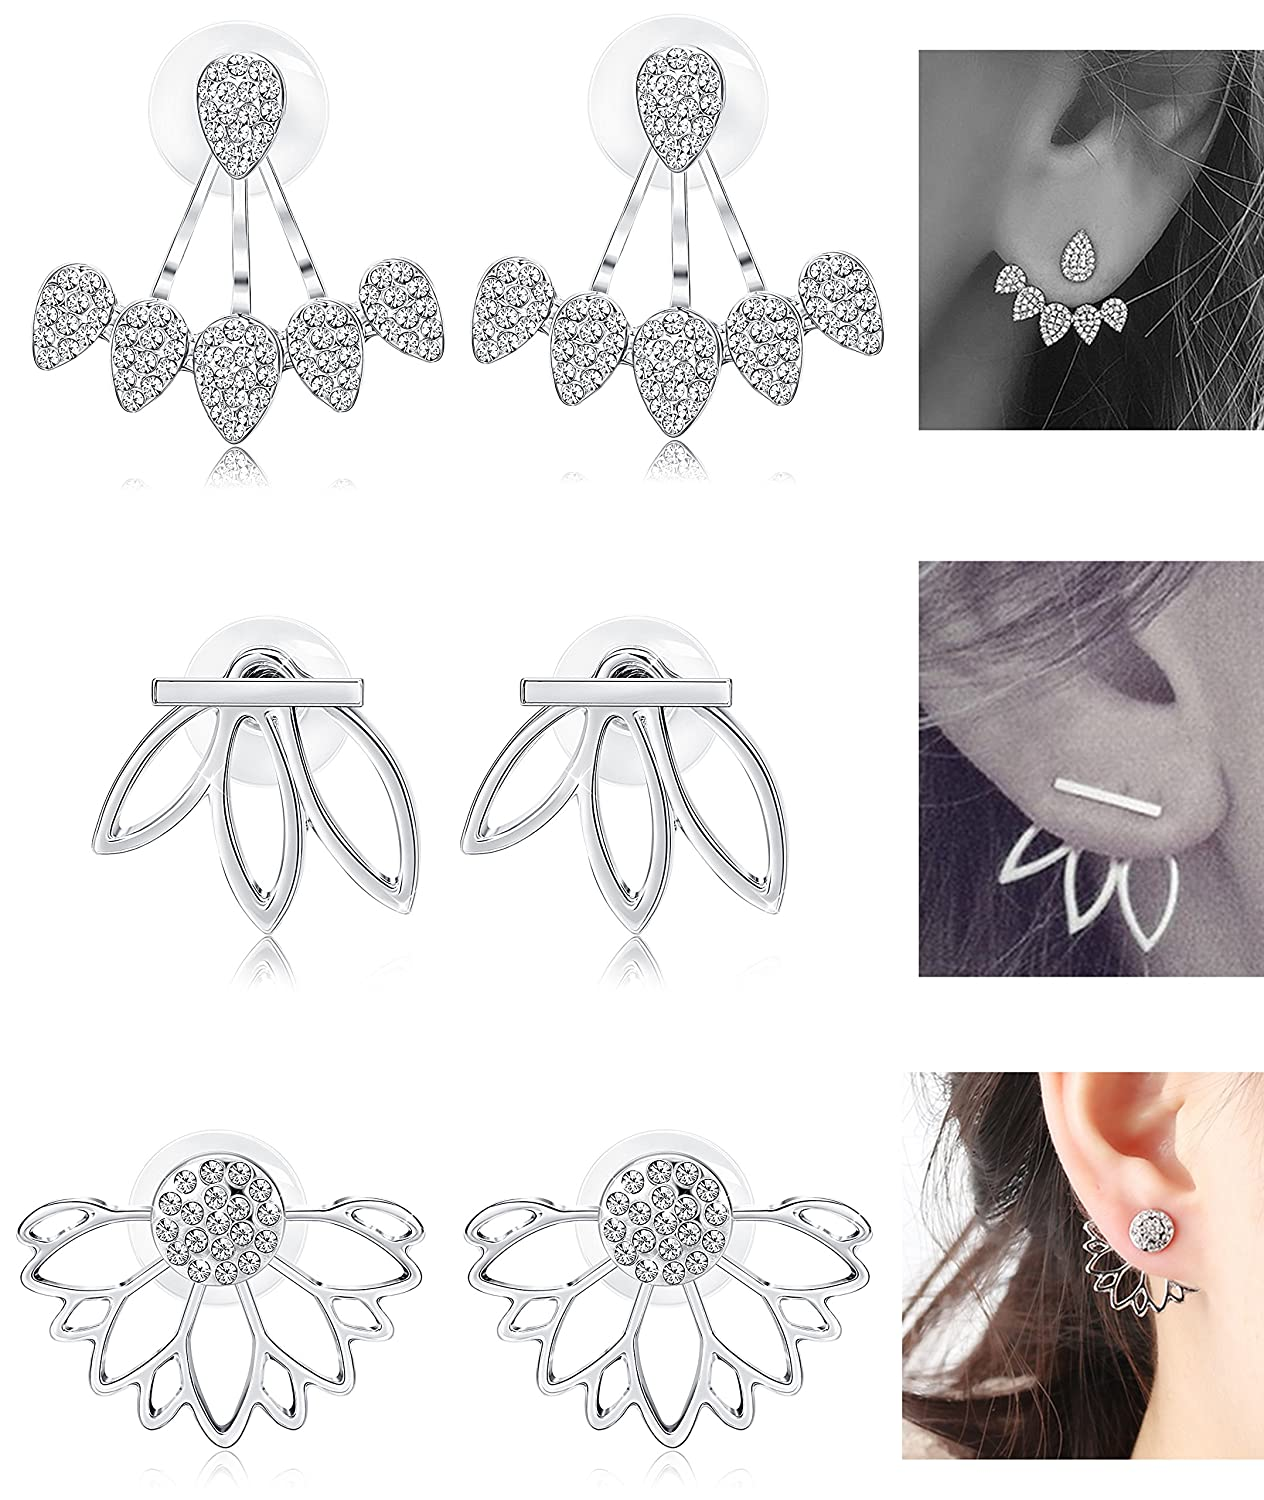 LOYALLOOK Hollow Lotus Earrings for Women Girls Fashion Flower Ear Jackets Crystal Simple Chic Stud Earrings Bar Stud Earrings Cuff Earrings Set DGE0006F